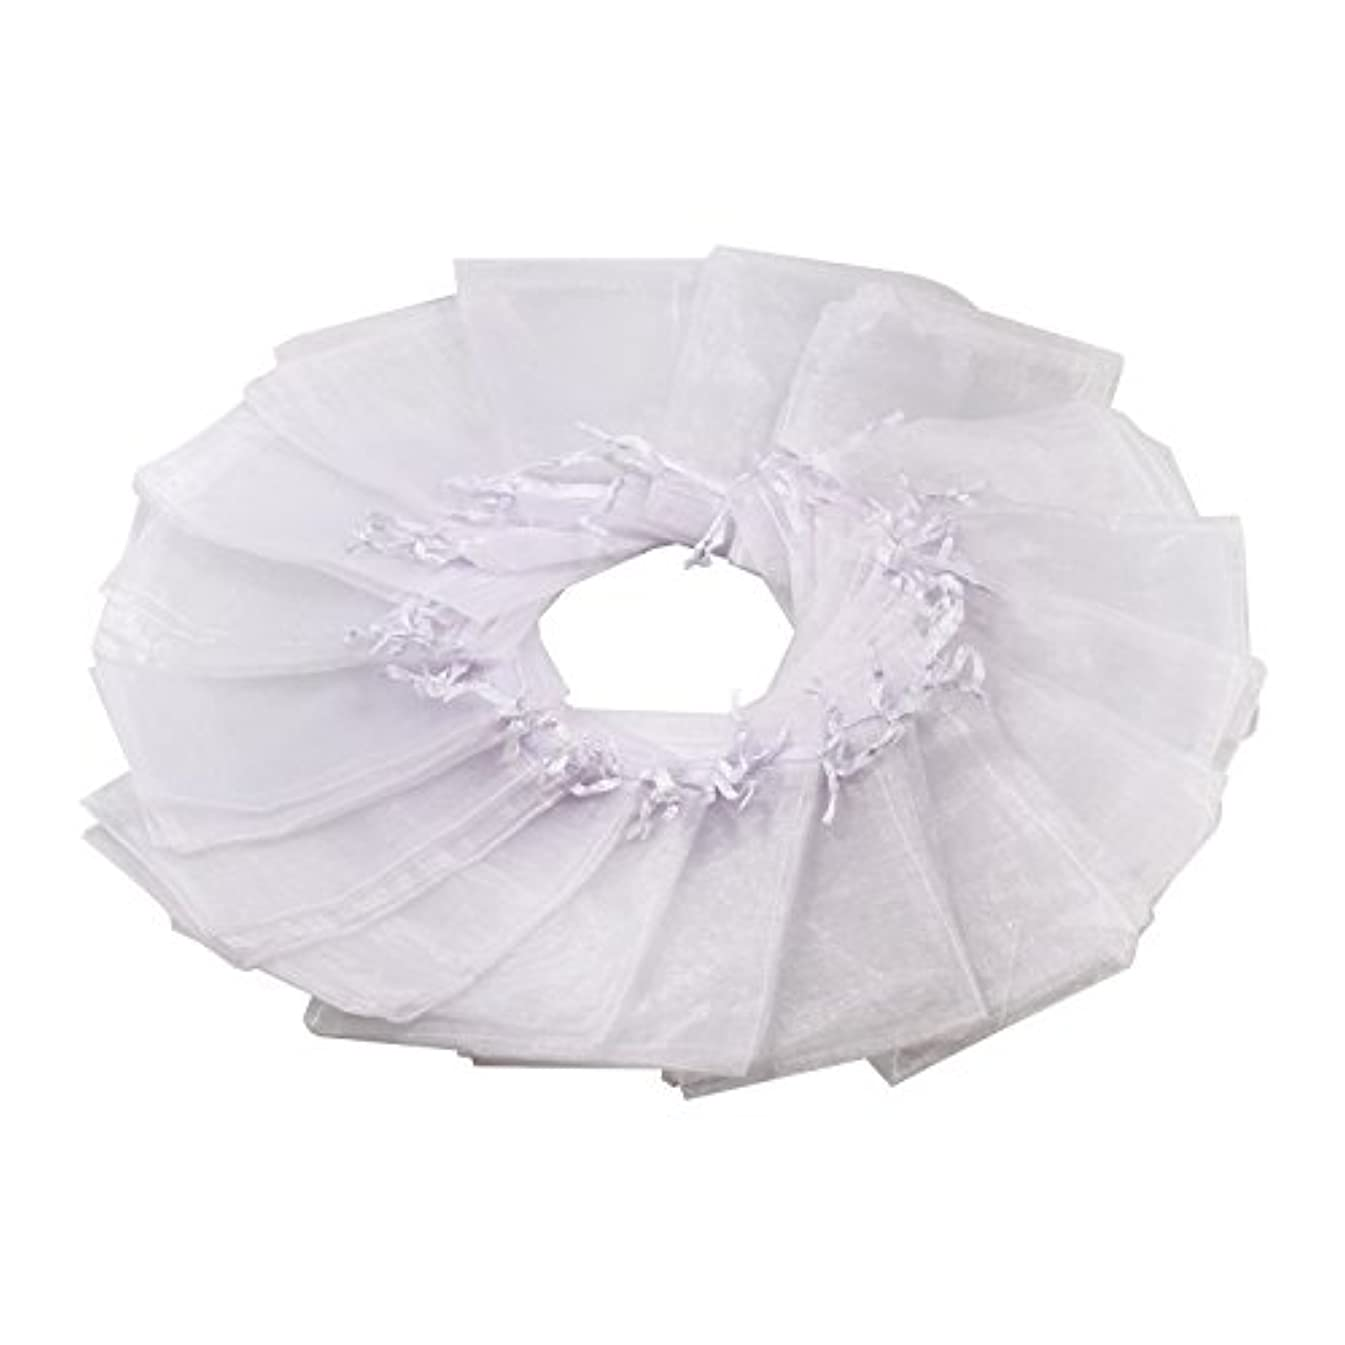 100Pcs 4x6 Inches Sheer Drawstring Organza Jewelry Pouches Wedding Party Christmas Favor Gift Bags (White)